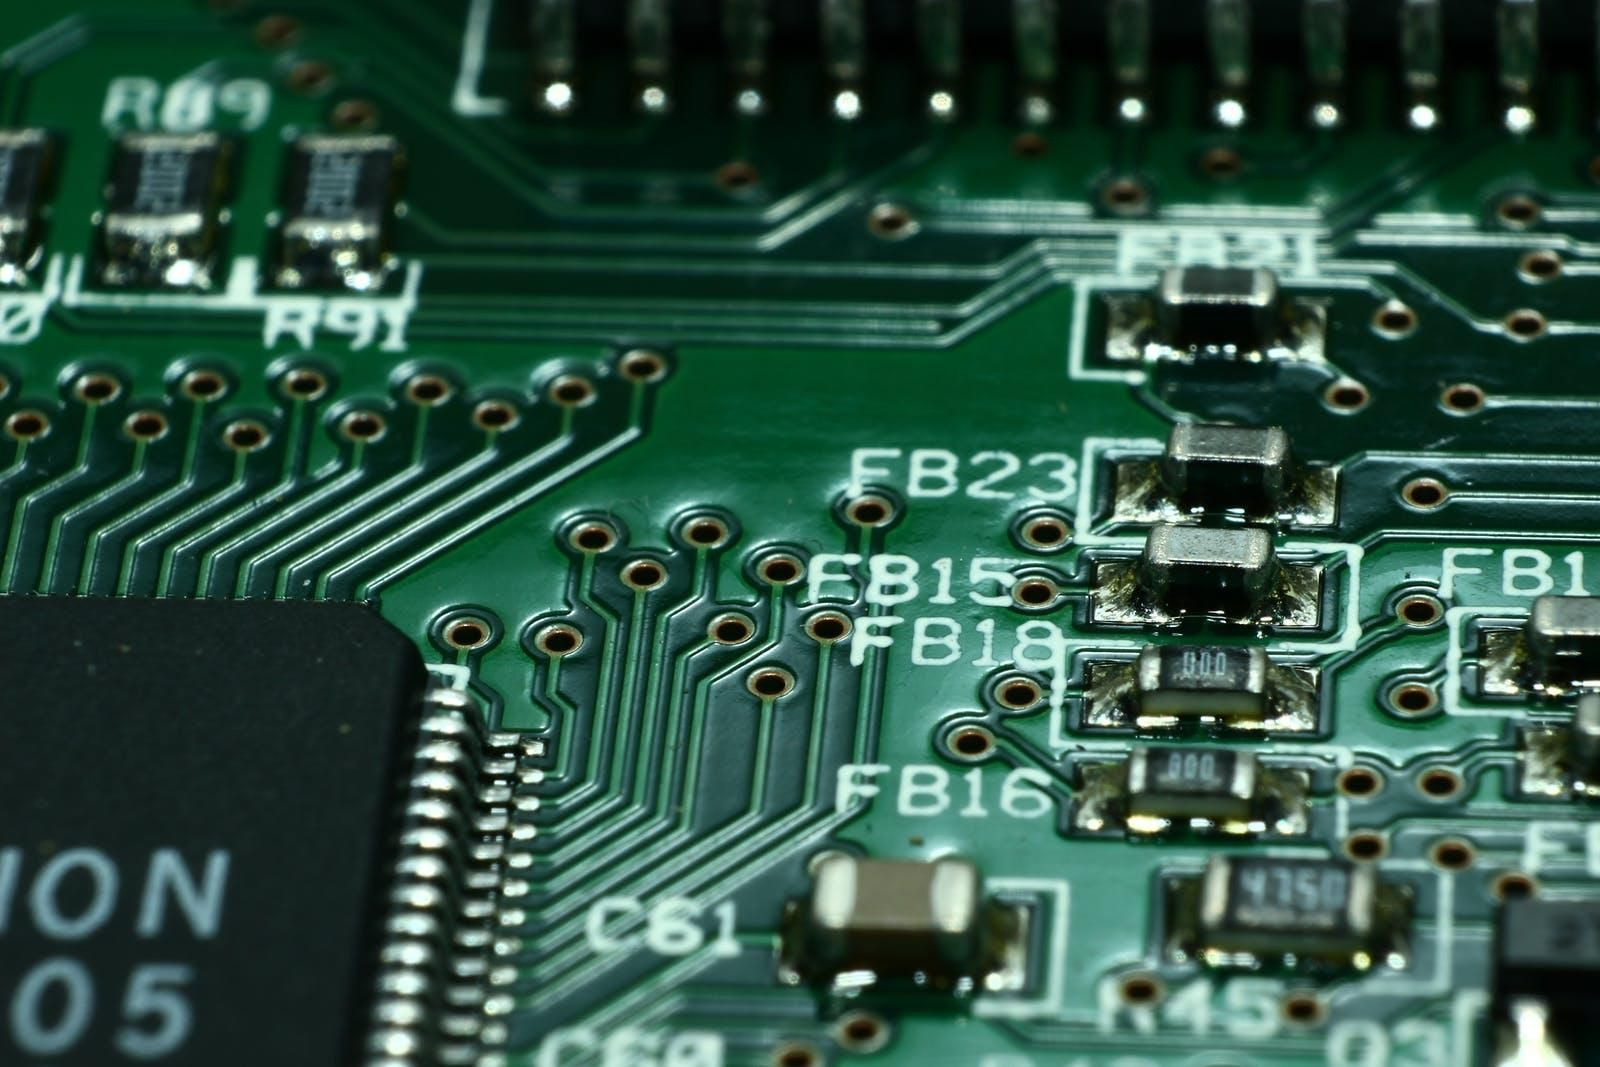 127263_printed-circuit-board-print-plate-via-macro-159220.jpeg